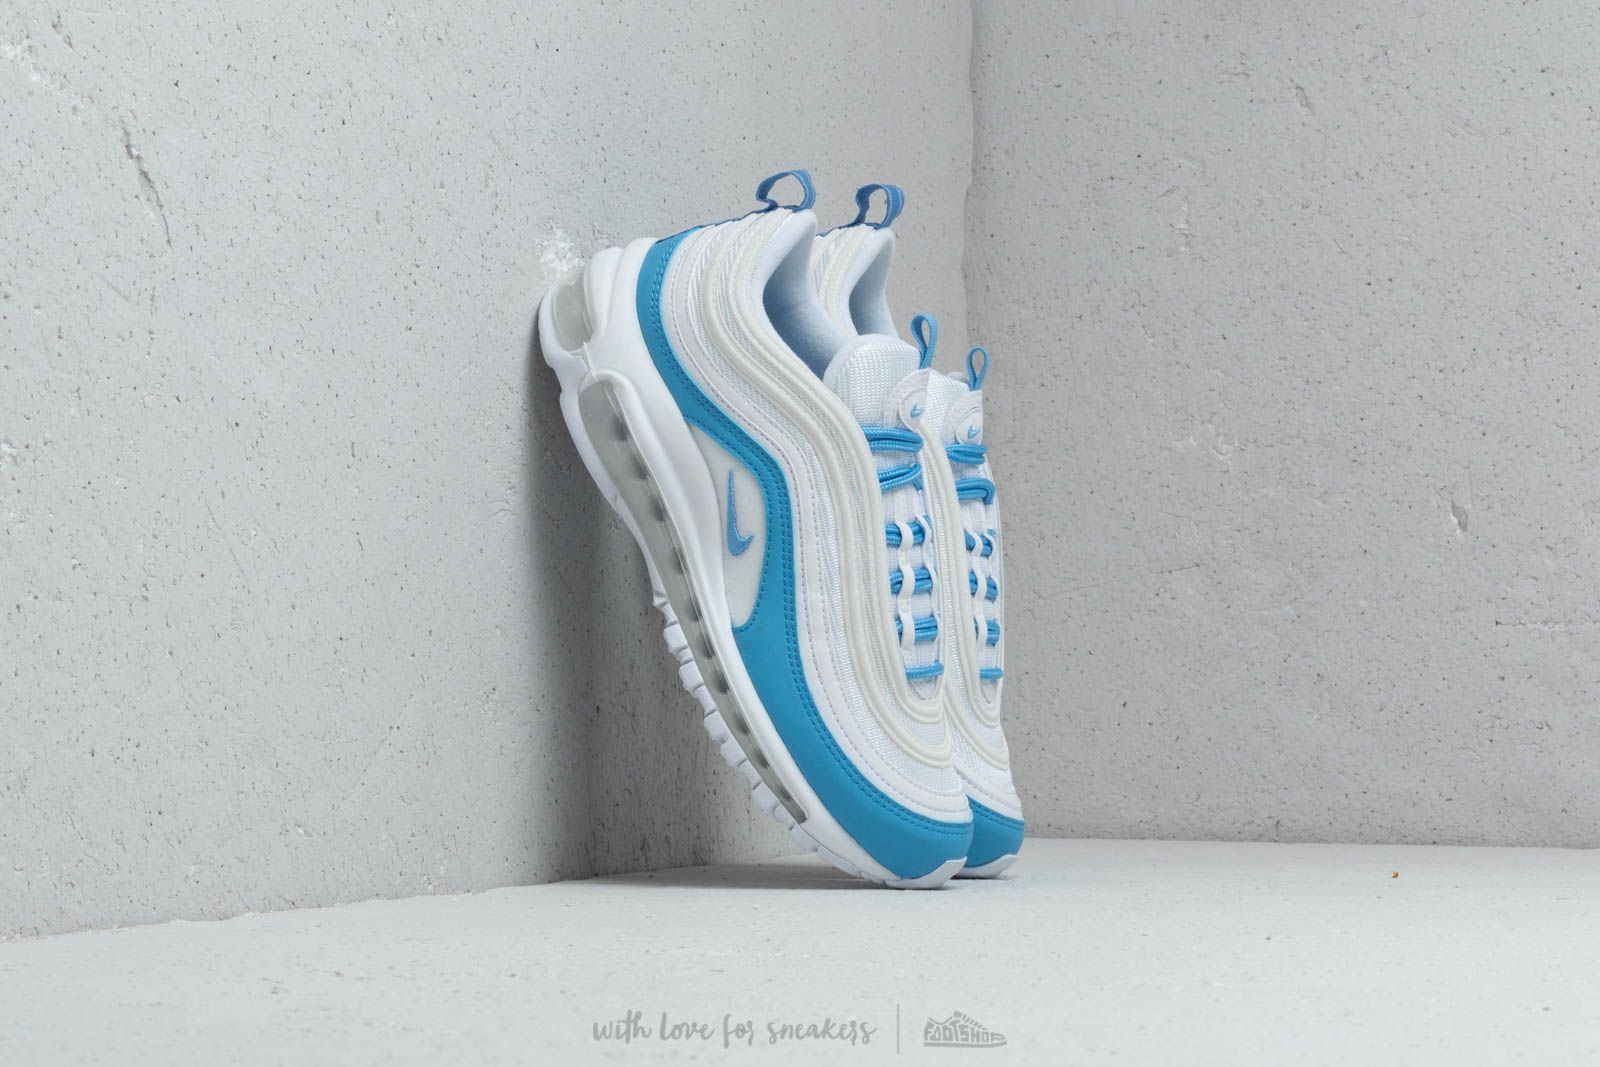 Intentar Supone Directamente  Women's shoes Nike W Air Max 97 Ess White/ University Blue | Footshop